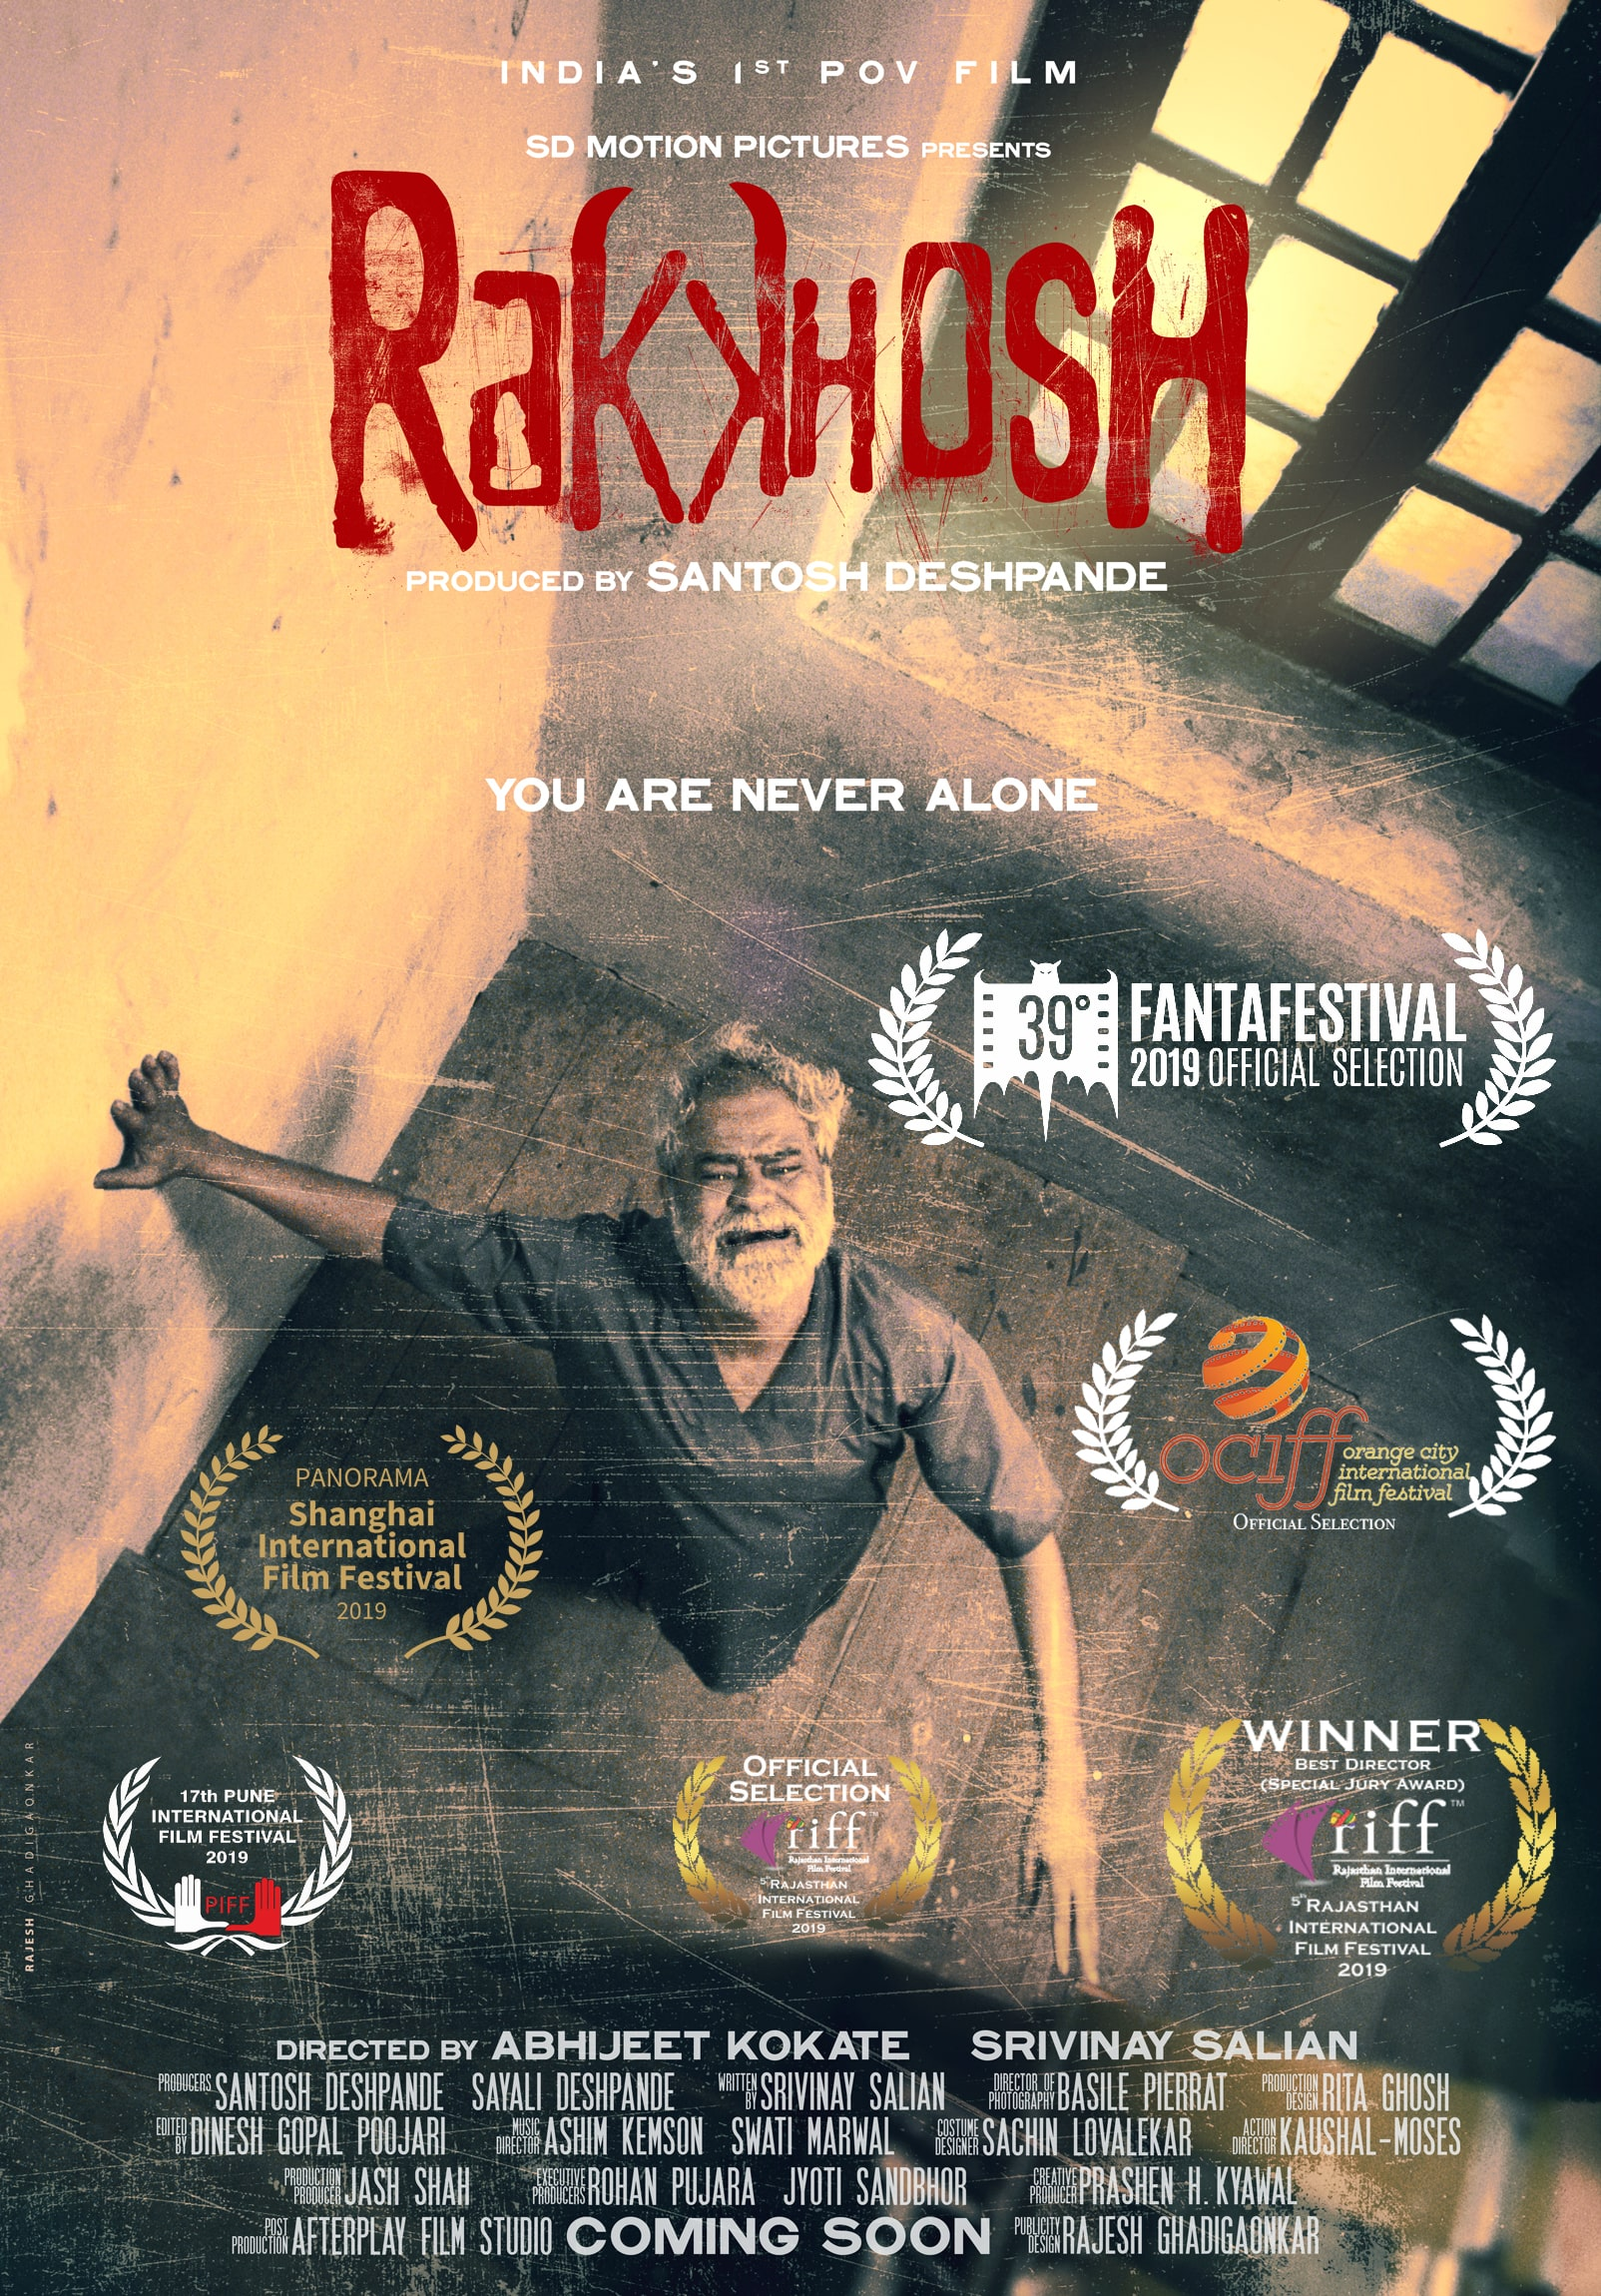 RAKKHOSH: The making of India's first POV film